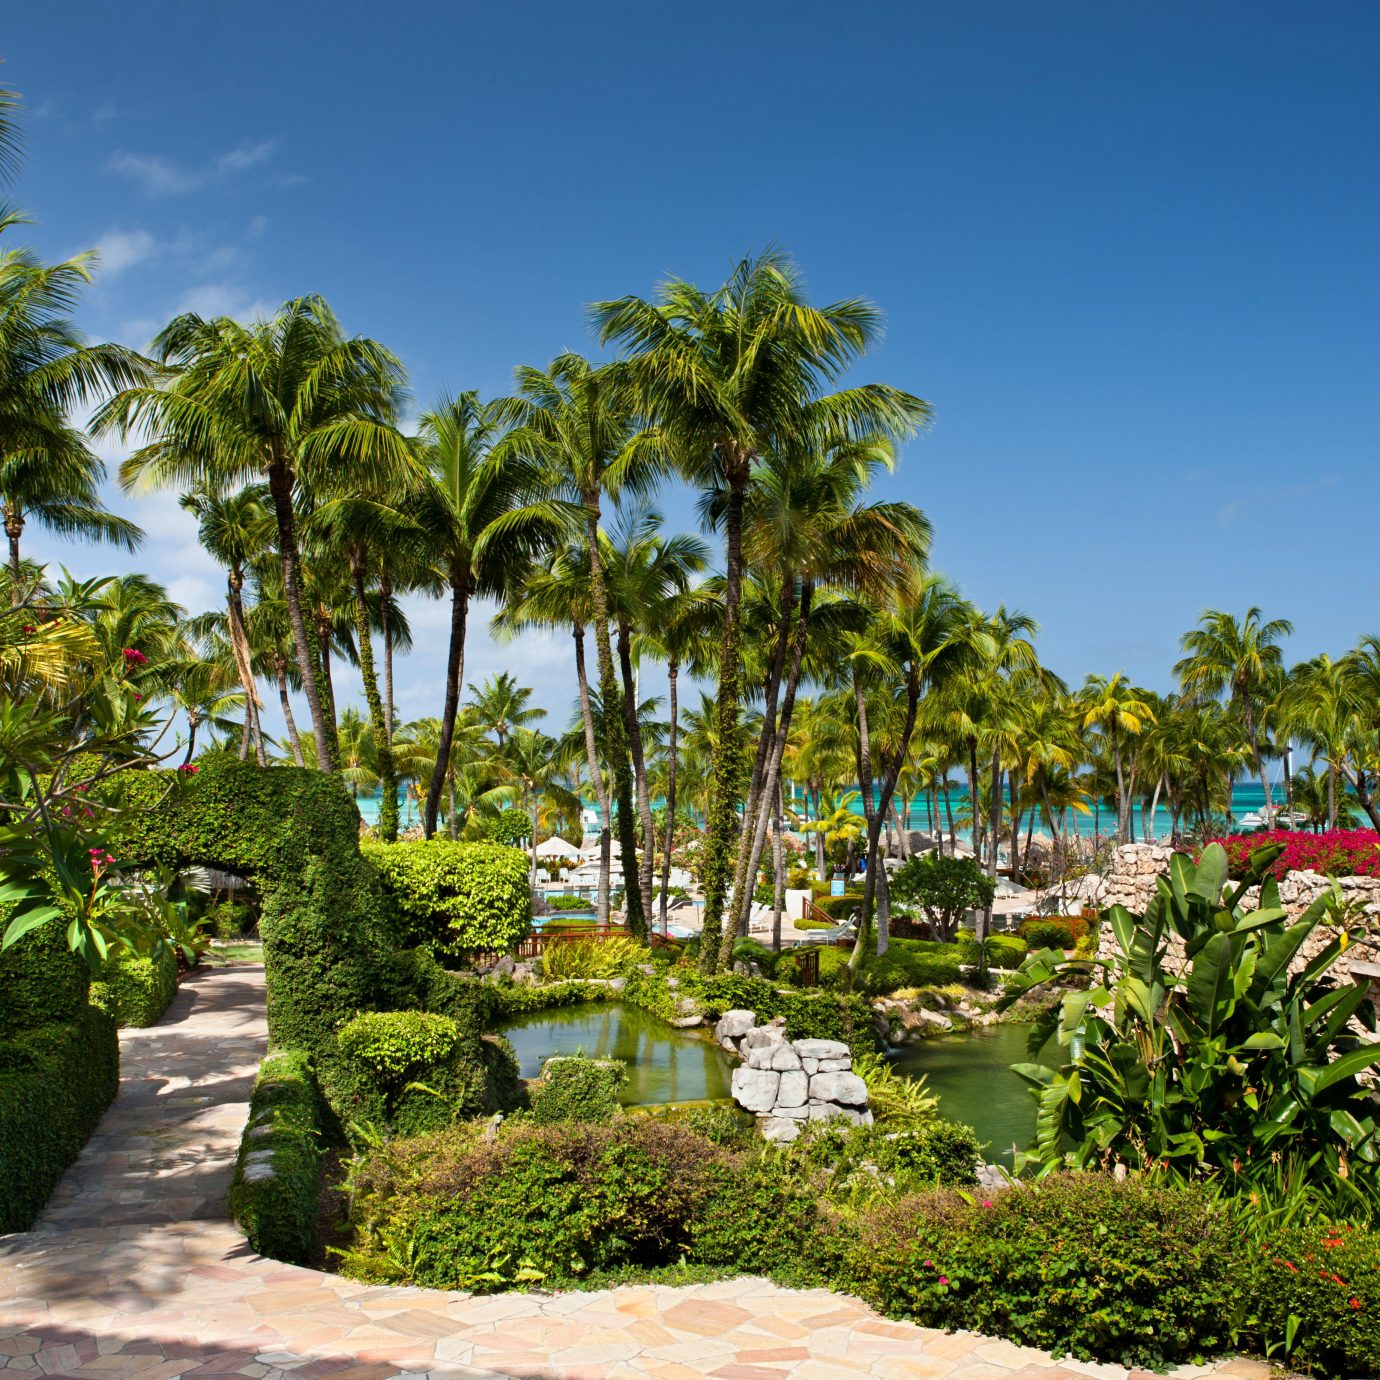 Aruba Beachfront caribbean Casino Classic Grounds Hotels Resort Tropical tree sky flora ecosystem botany plant Garden arecales flower tropics palm palm family botanical garden park Jungle lined